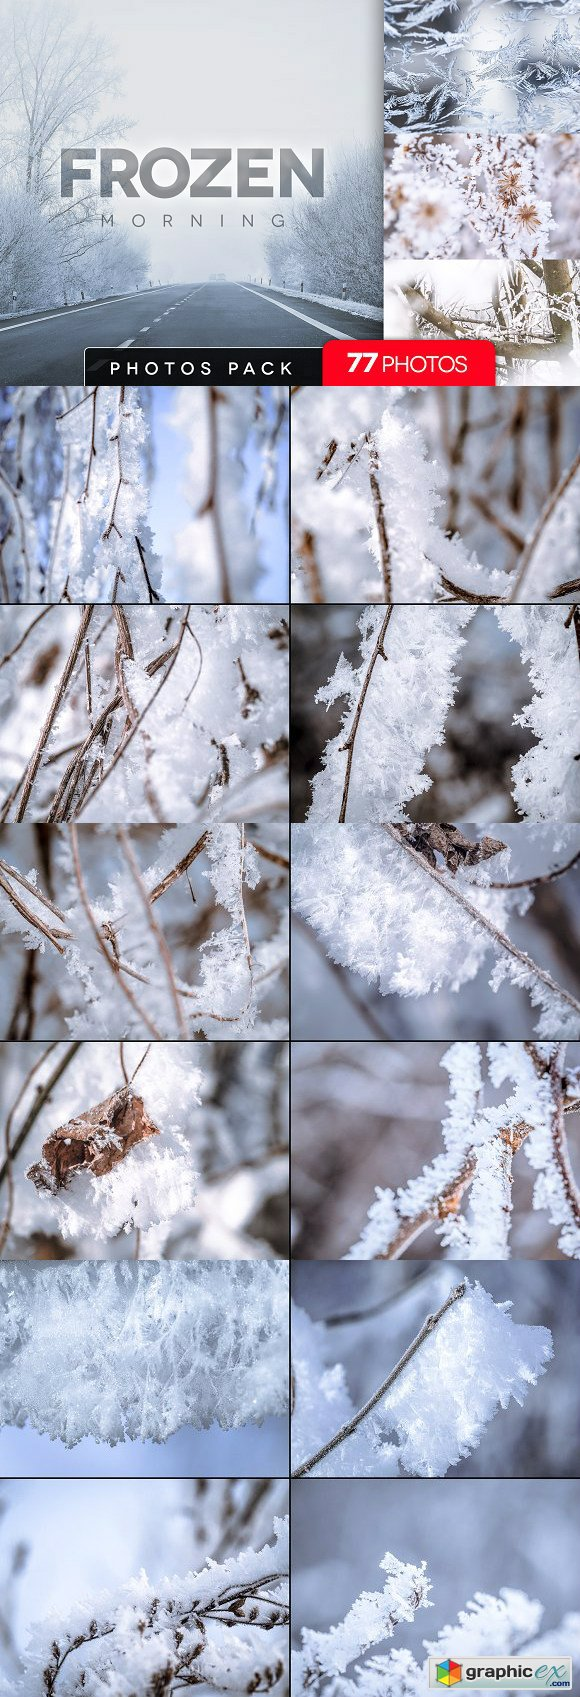 Frozen morning bundle 77pics